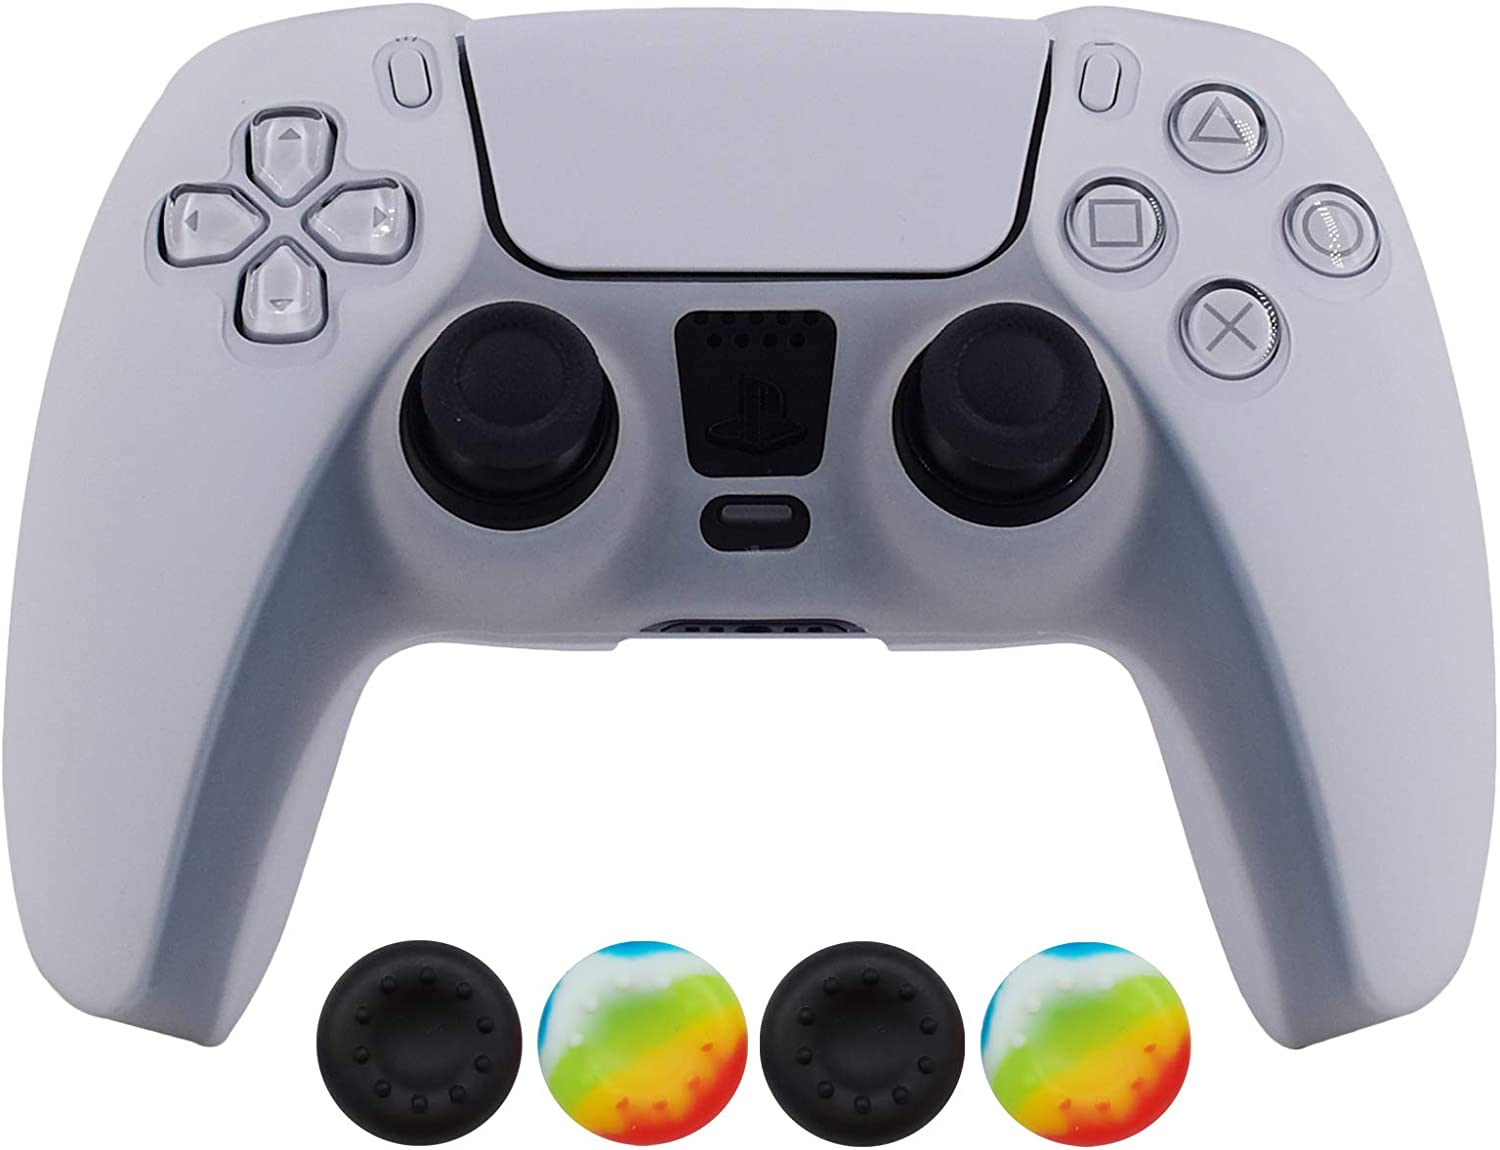 PS5 Controller Skin,Hikfly Silicone Cover for Sony PlayStation5 Controller Grip Skin Protector Faceplates Kits Video Games(1x White Cover with 4 x Thumb Grips Caps)